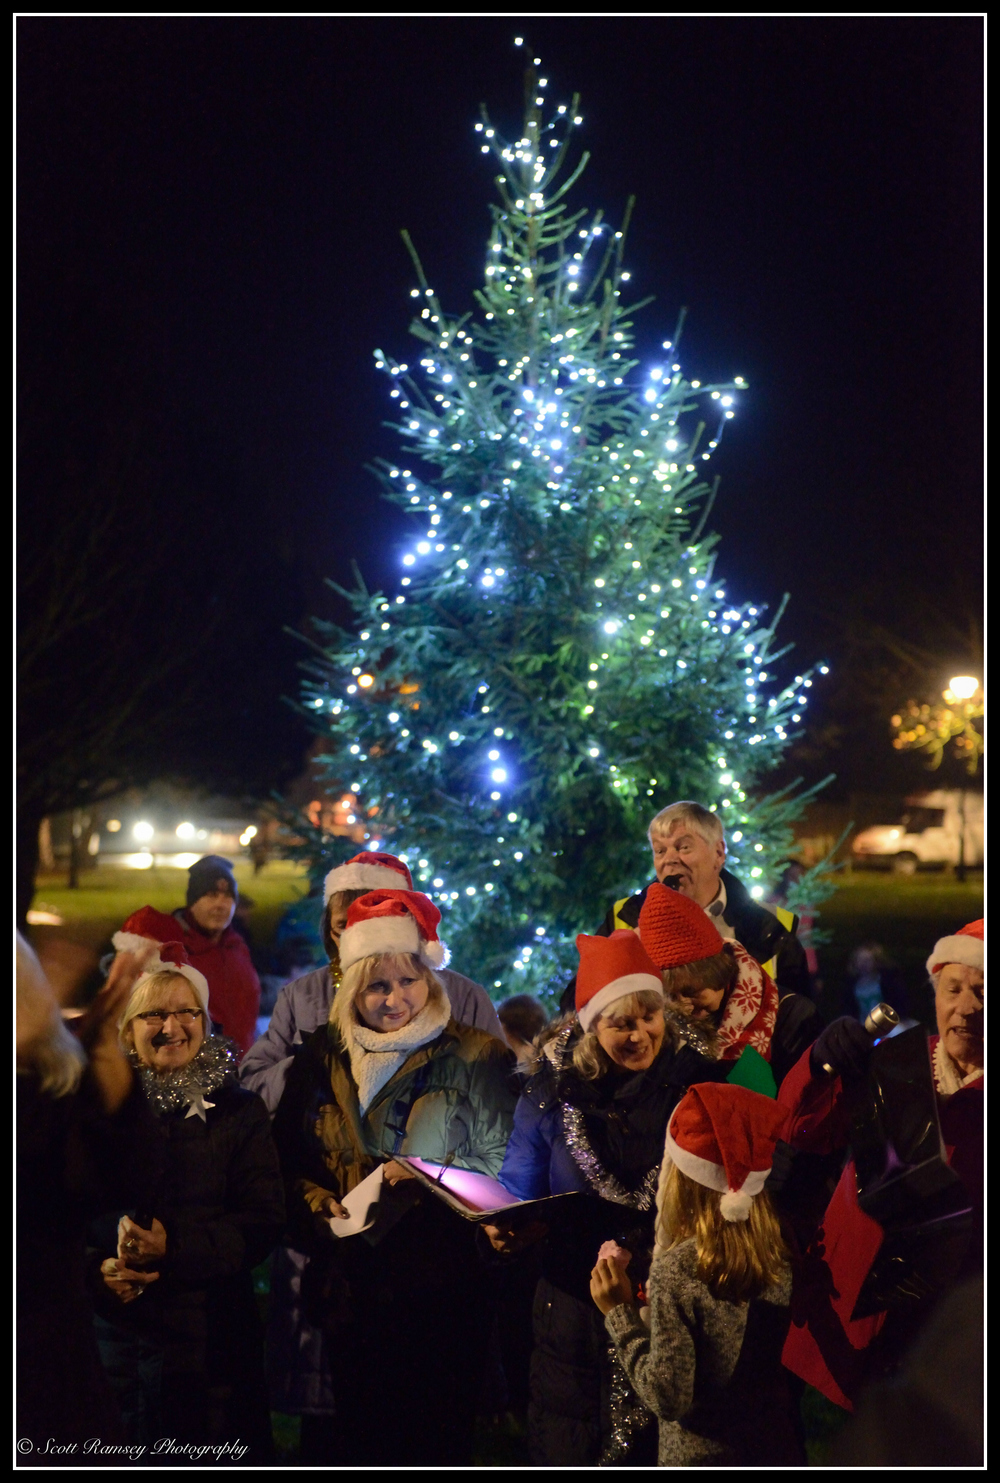 The East Preston village christmas tree lights are switched on.